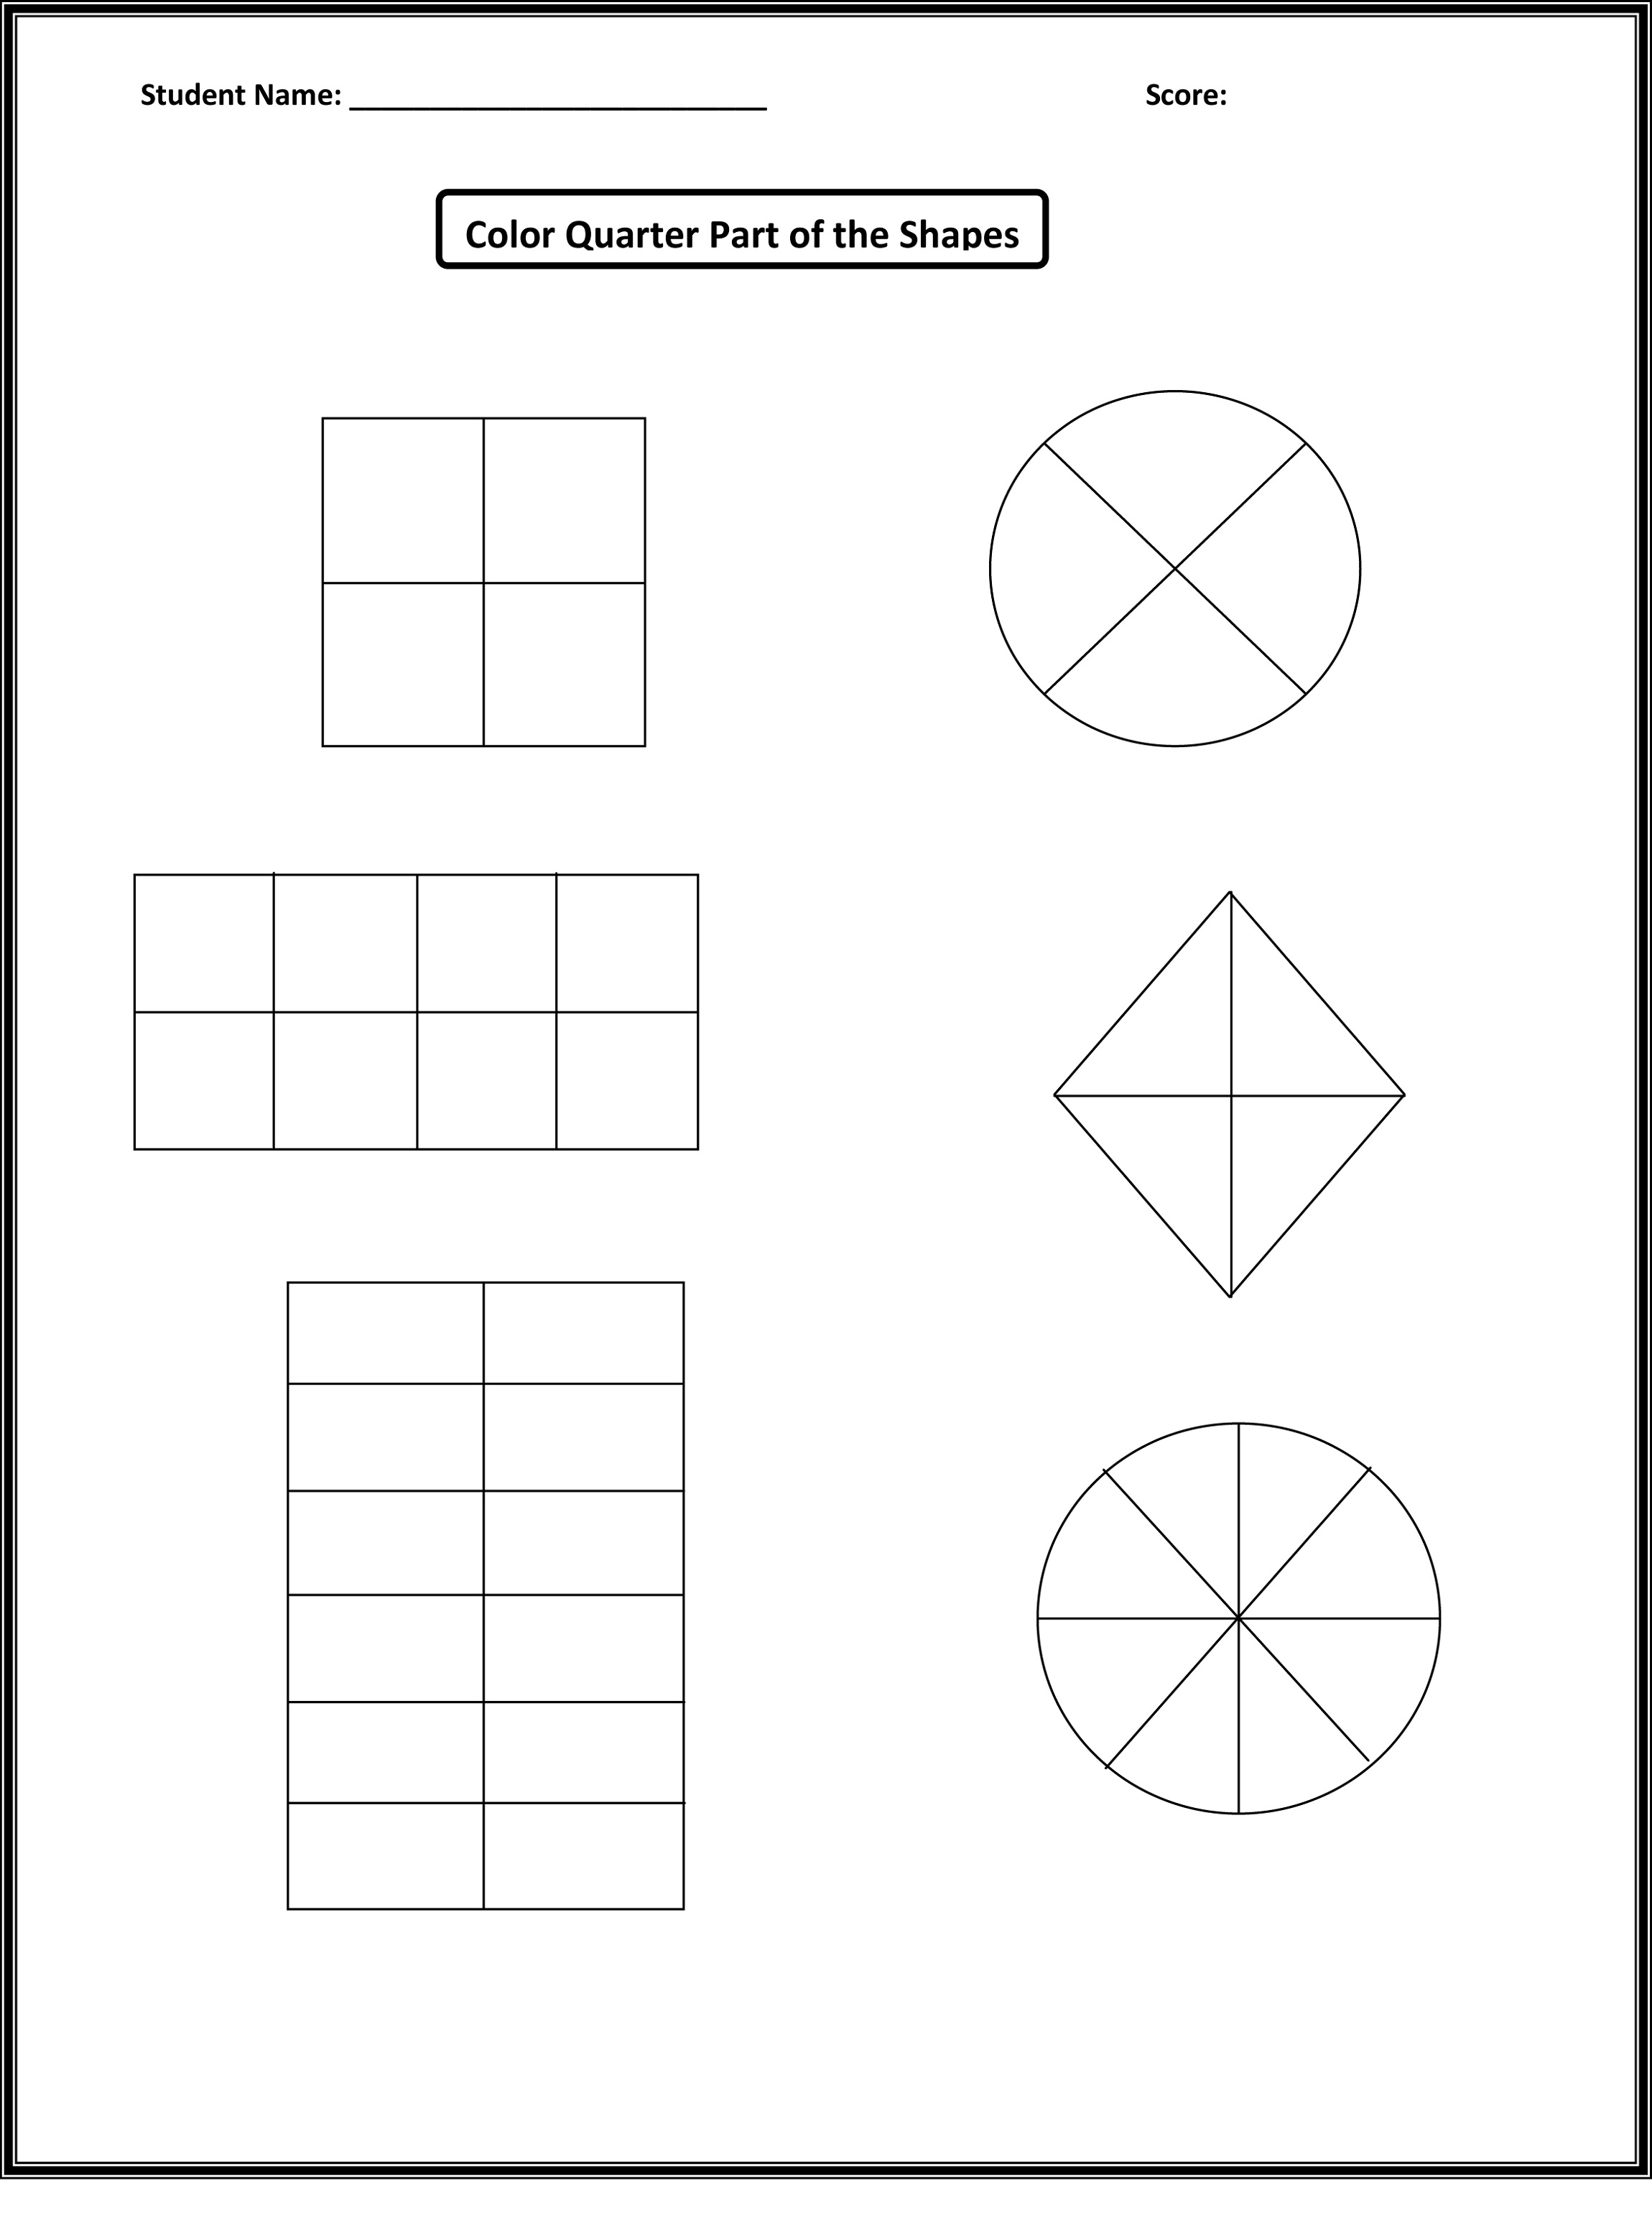 Mathworksheets4kids Fraction